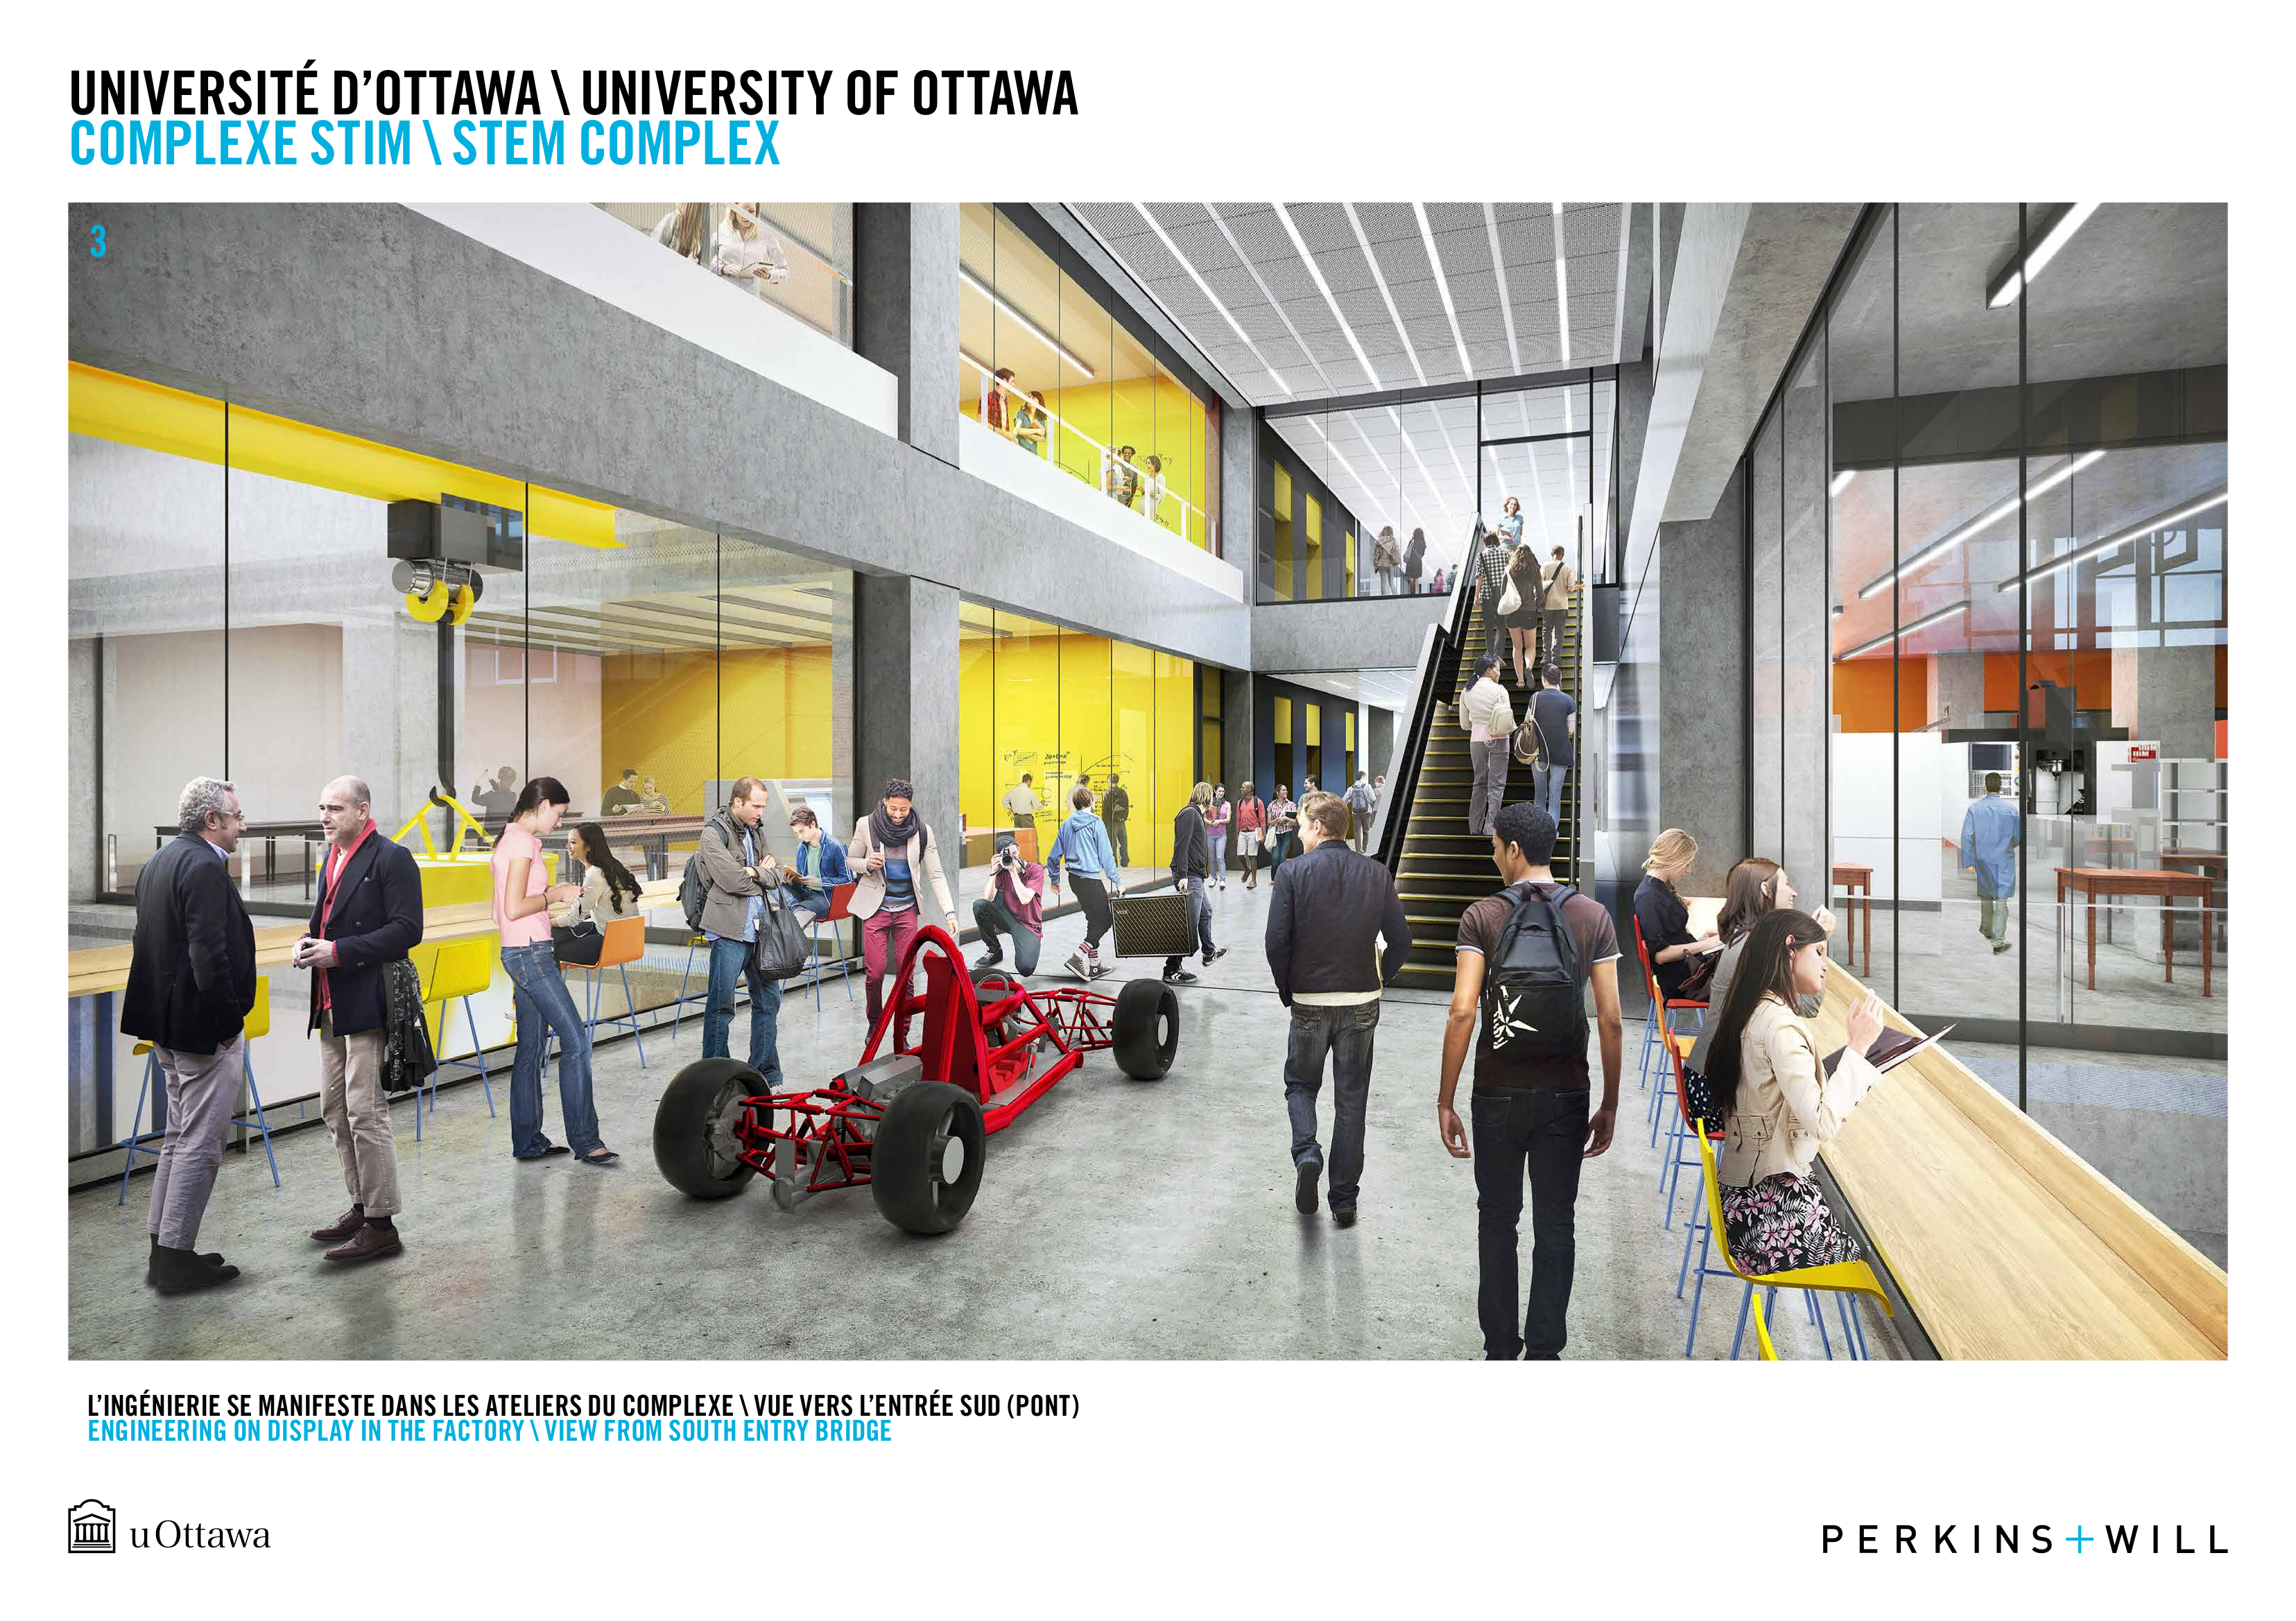 A rendering of the interior of the future STEM complex illustrating people walking down a busy, colorful hall